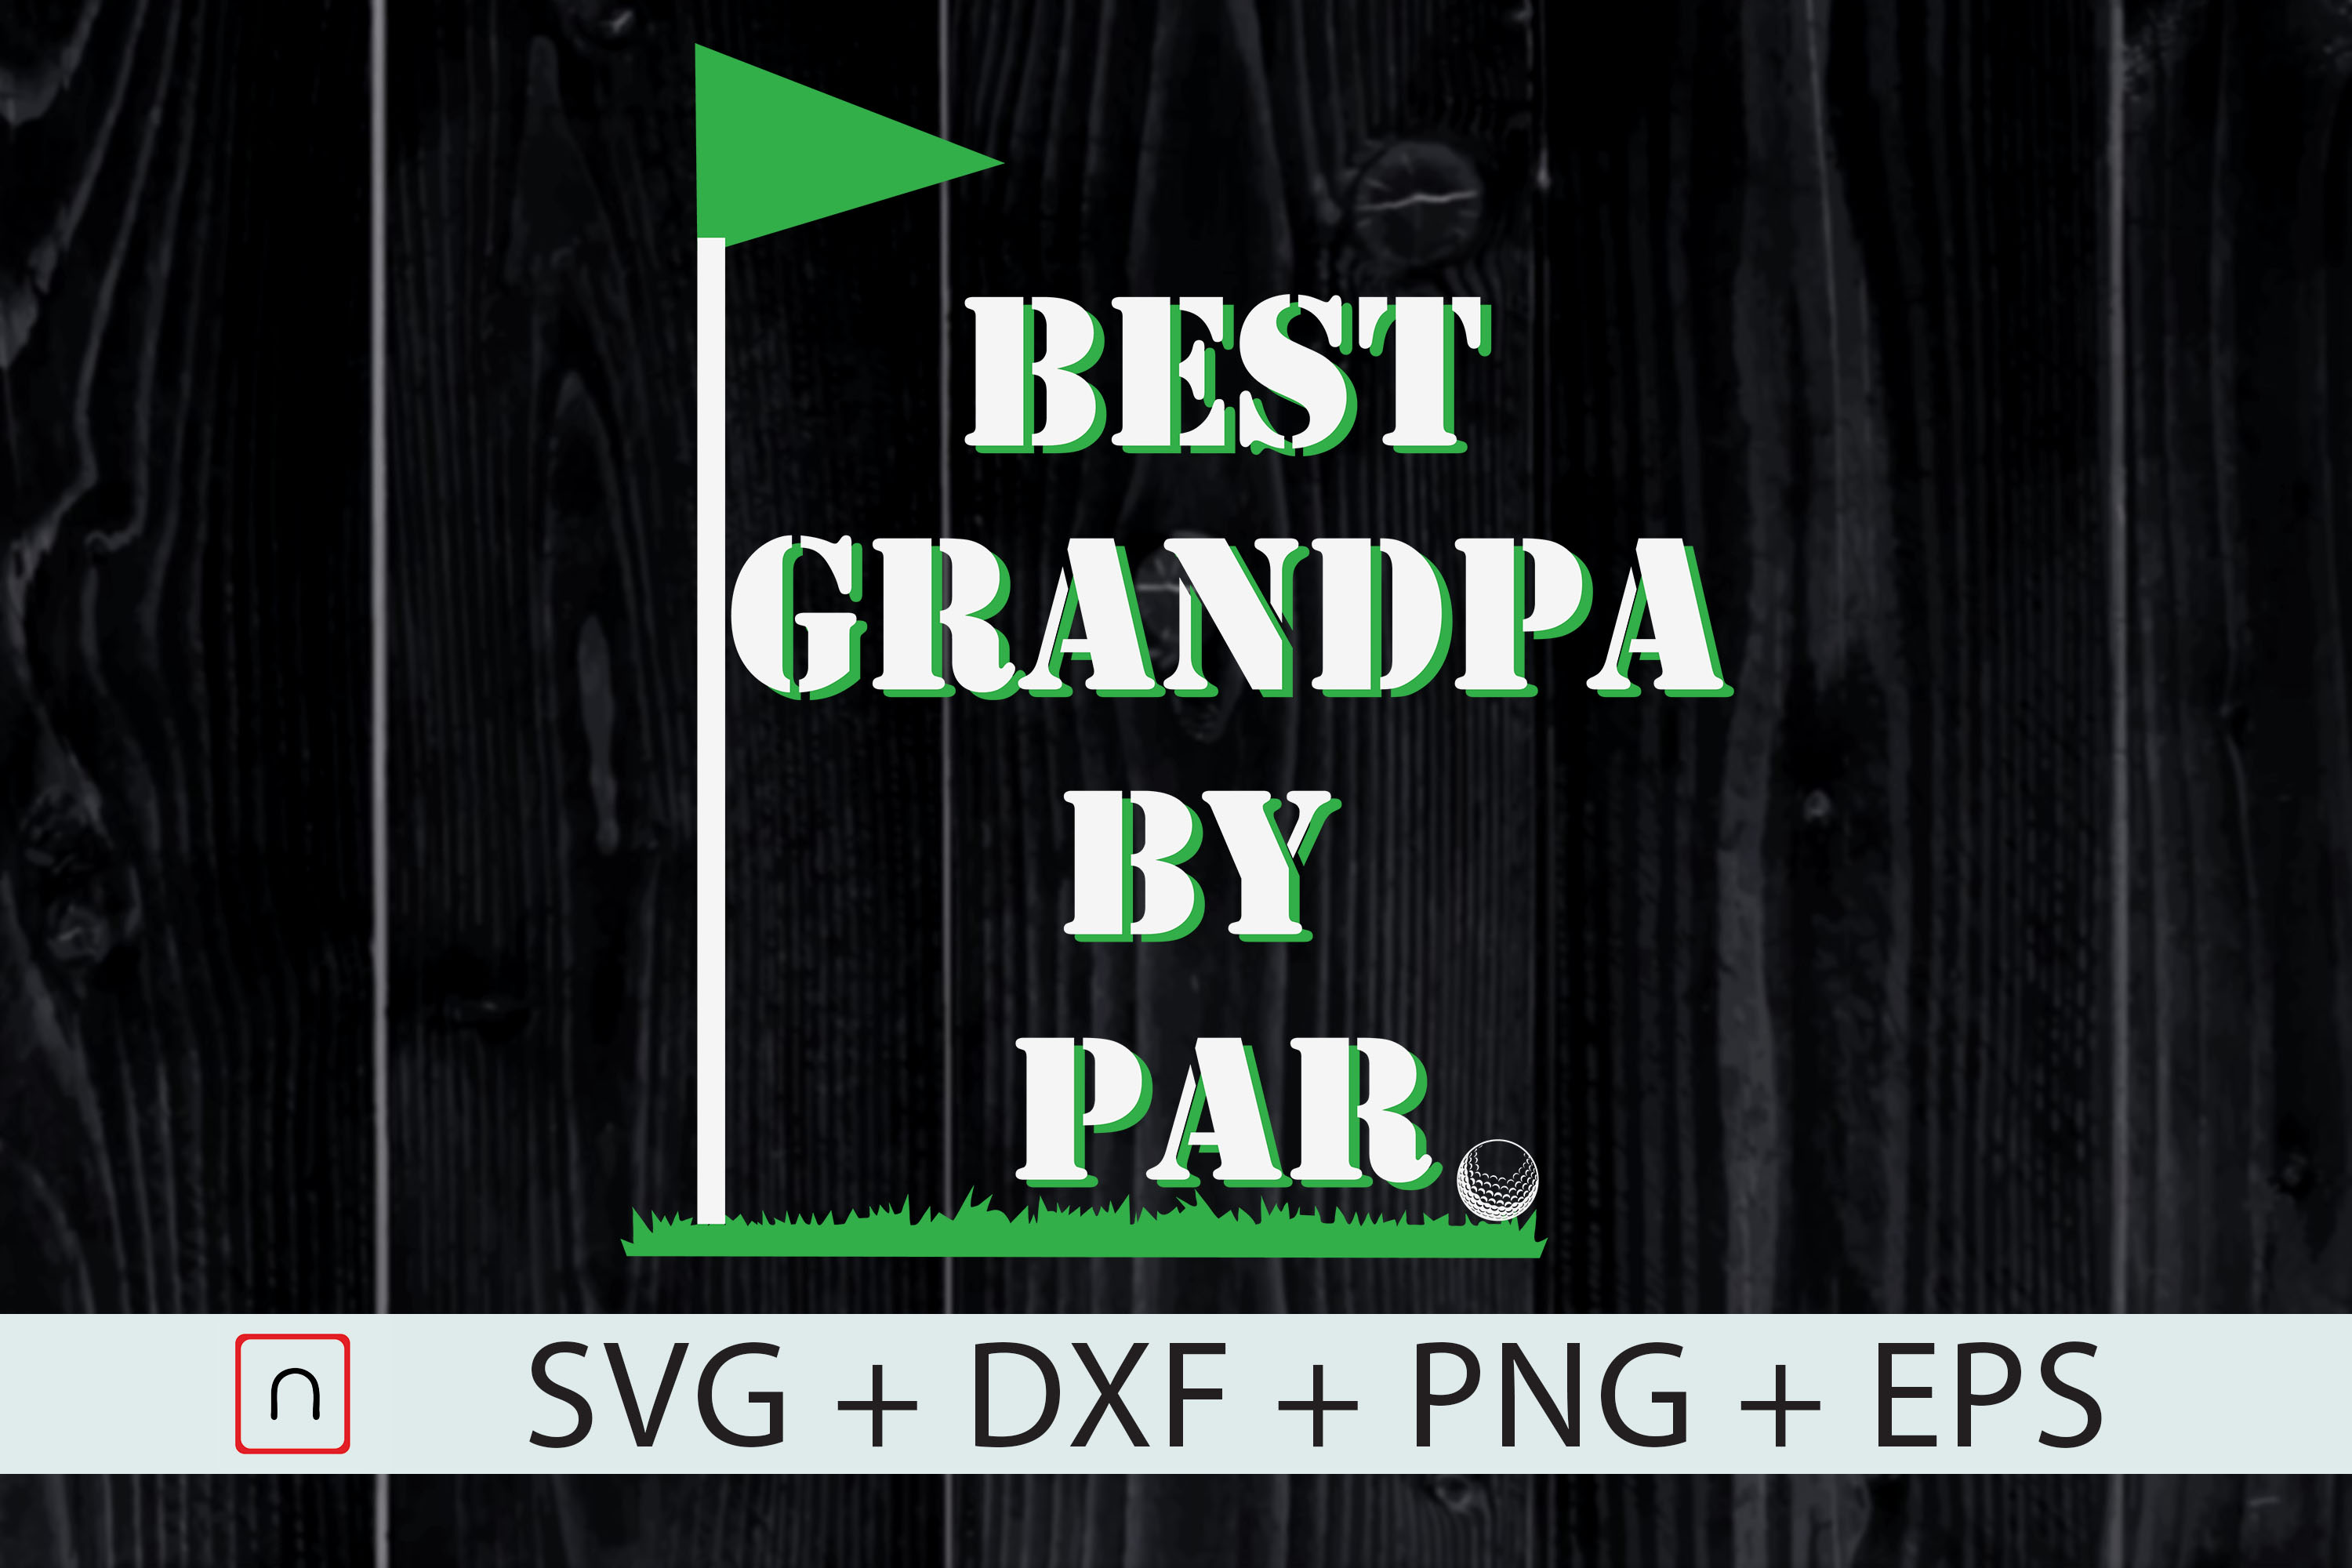 Download Free Best Grandpa By Par Cricut Graphic By Novalia Creative Fabrica for Cricut Explore, Silhouette and other cutting machines.